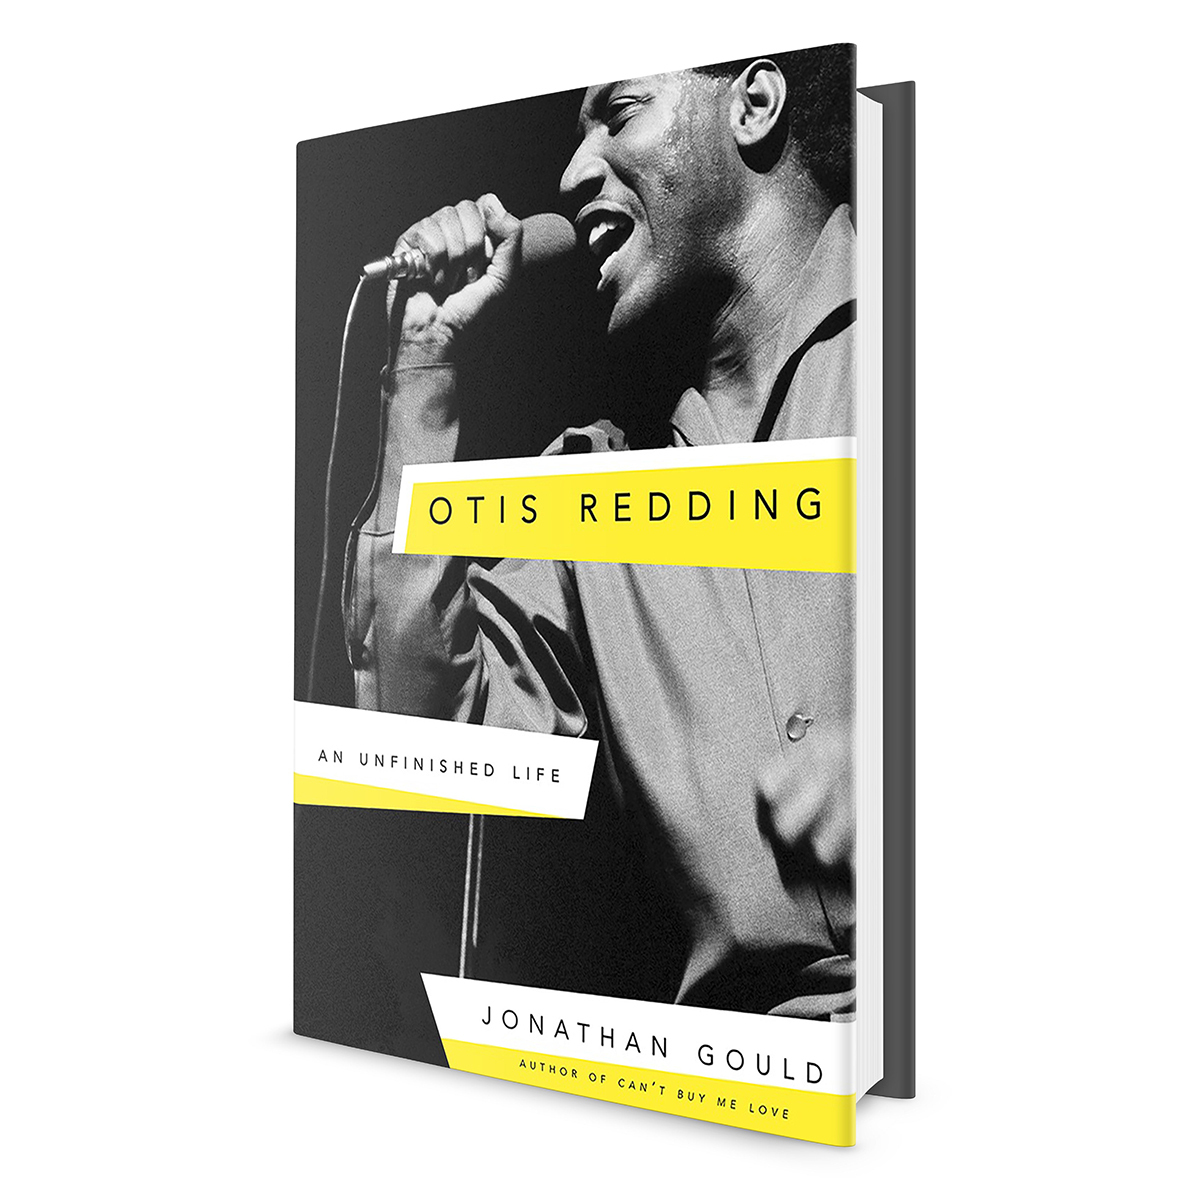 Otis Redding - An Unfinished Life Book